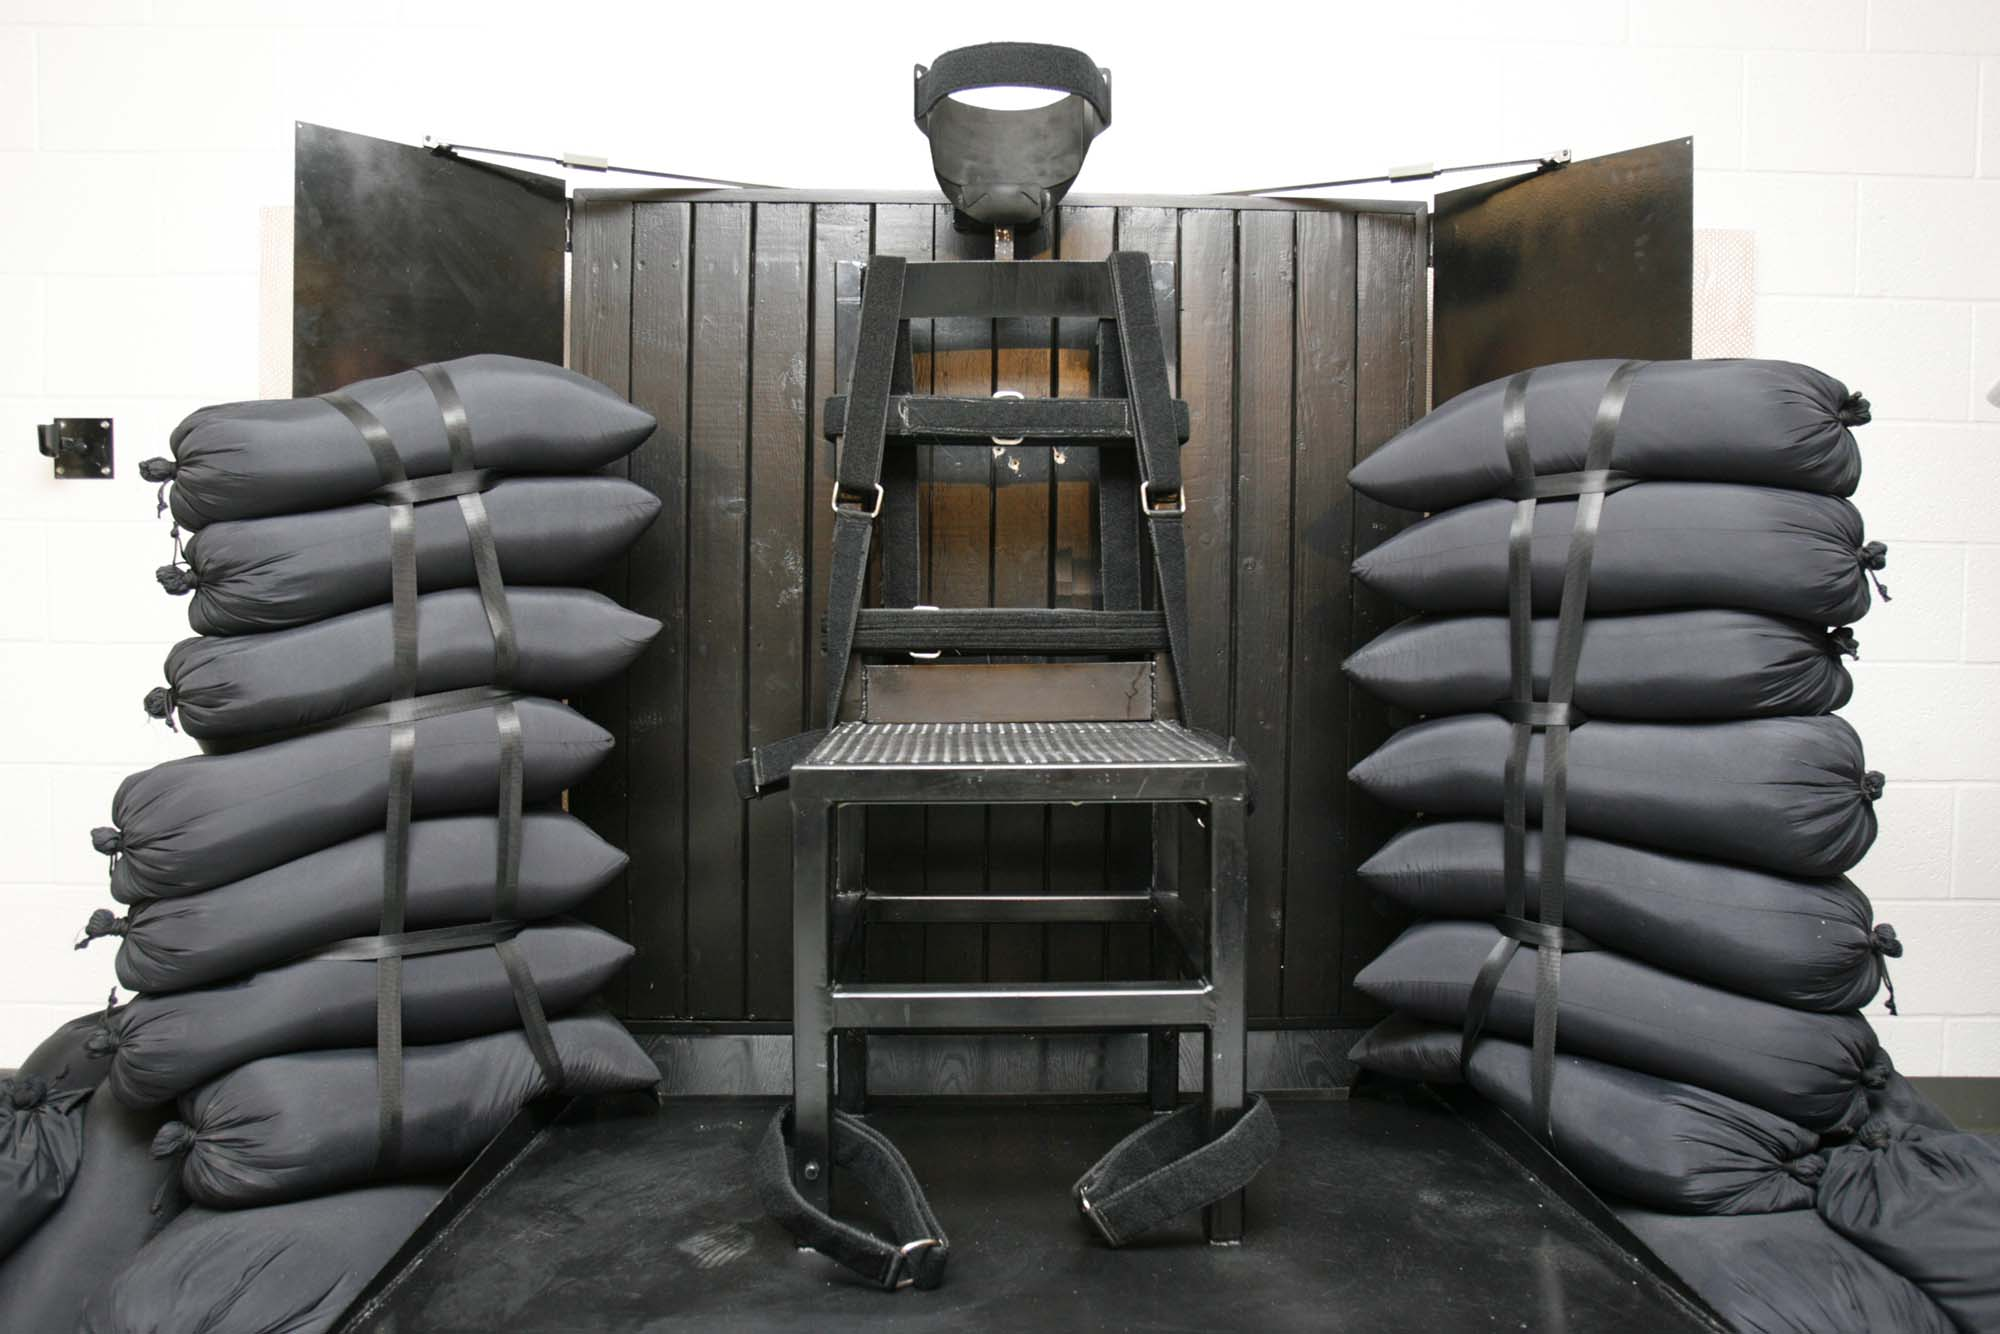 The firing squad execution chamber at the Utah State Prison.